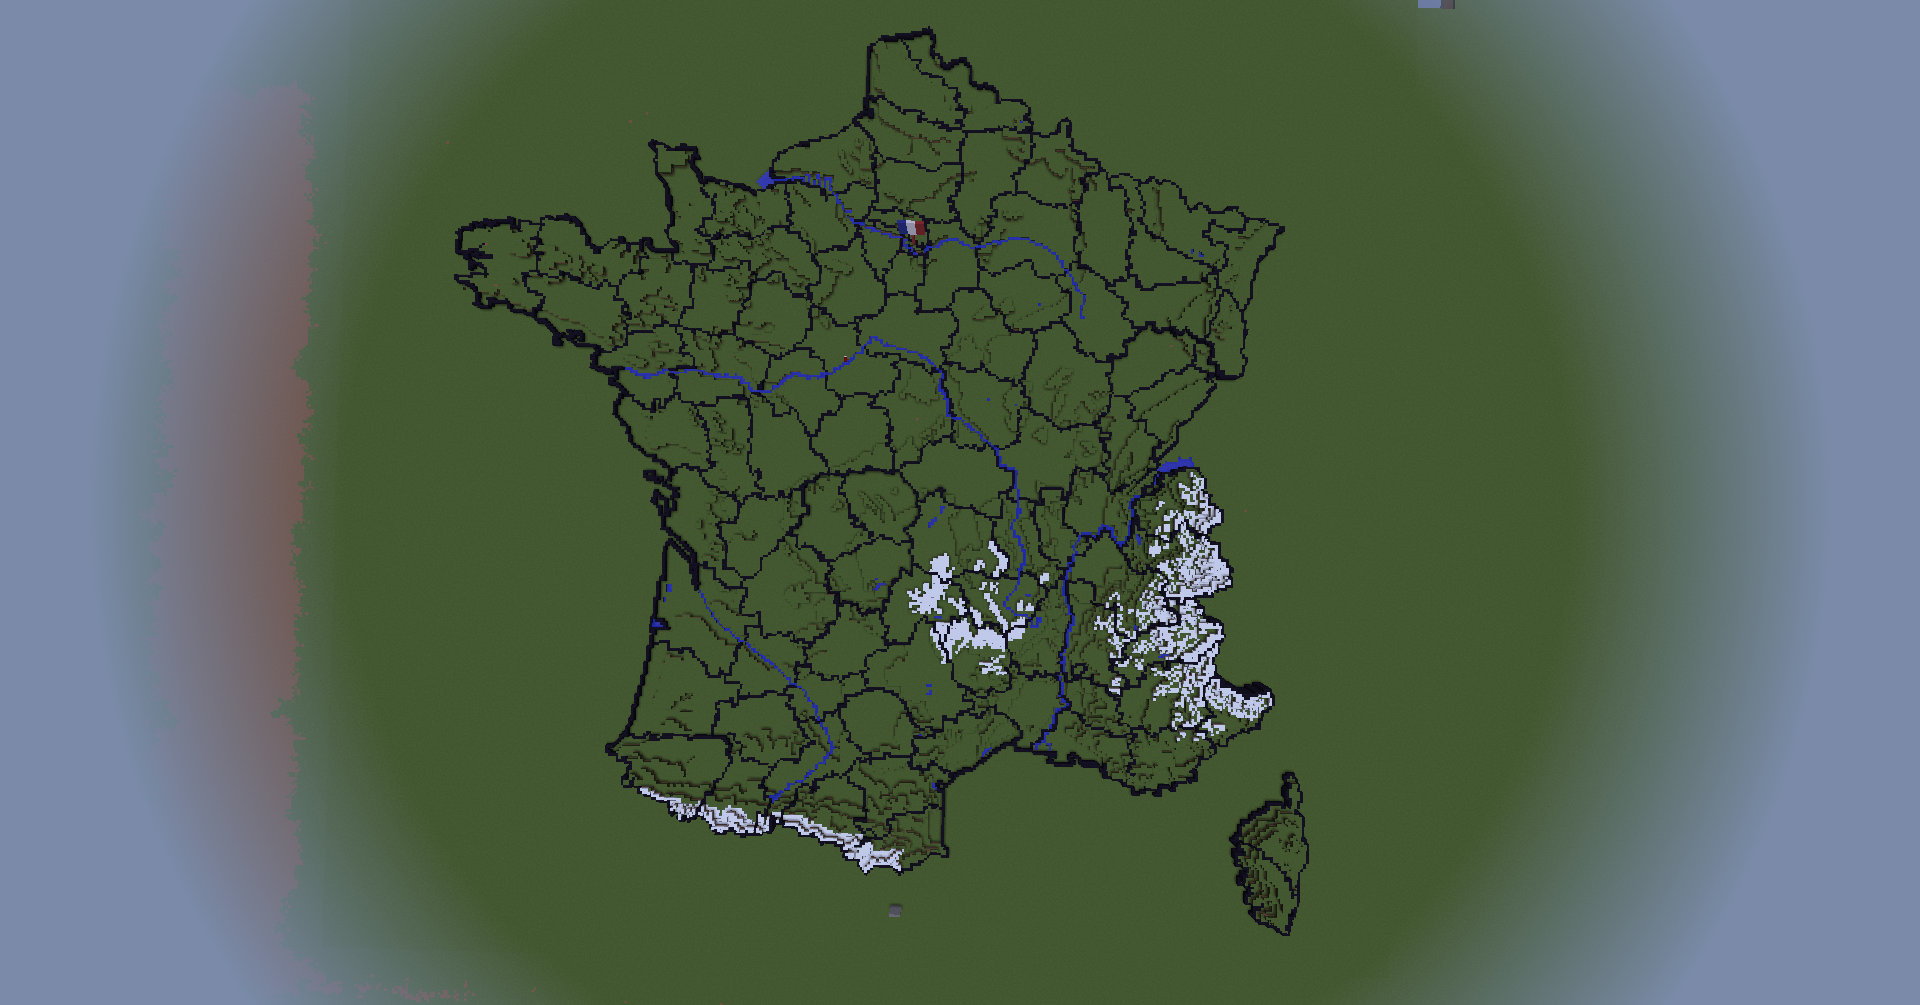 maps for minecraft pc with Minecraft 1 7 1 8 La France Dans Minecraft on Minecraft 1 7 Les Drapeaux Dans Minecraft in addition Texture Minecraft 539 Tiny Pixels also Downloads further Fan Recreates Black Ops Nuketown In Gta Online furthermore Skin Anima.